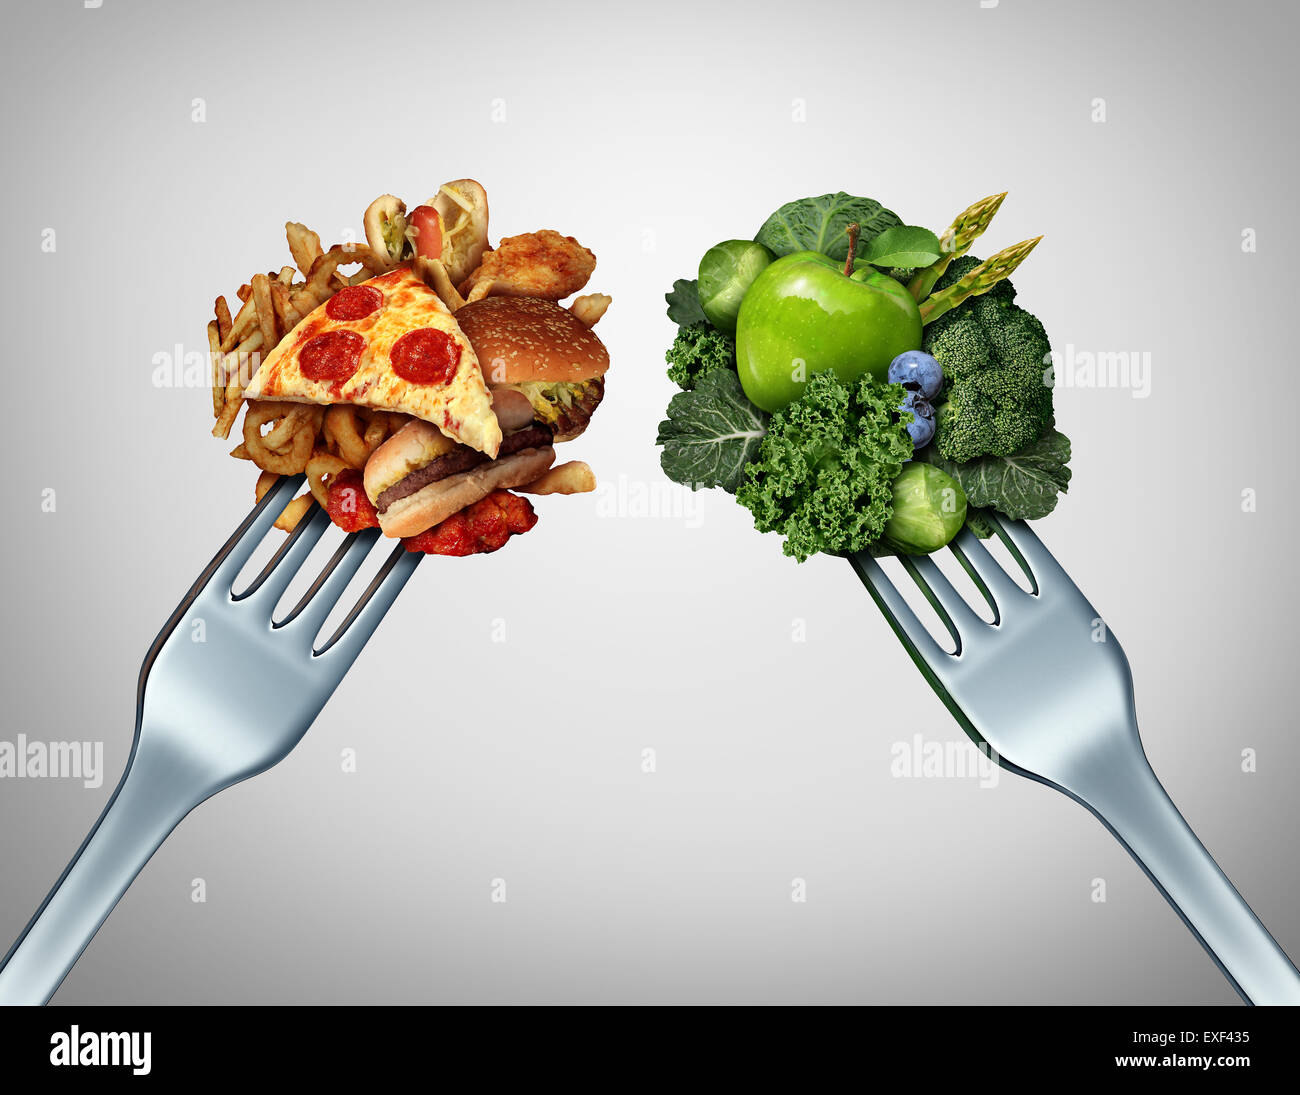 Diet struggle and decision concept and nutrition choices dilemma between healthy good fresh fruit and vegetables - Stock Image